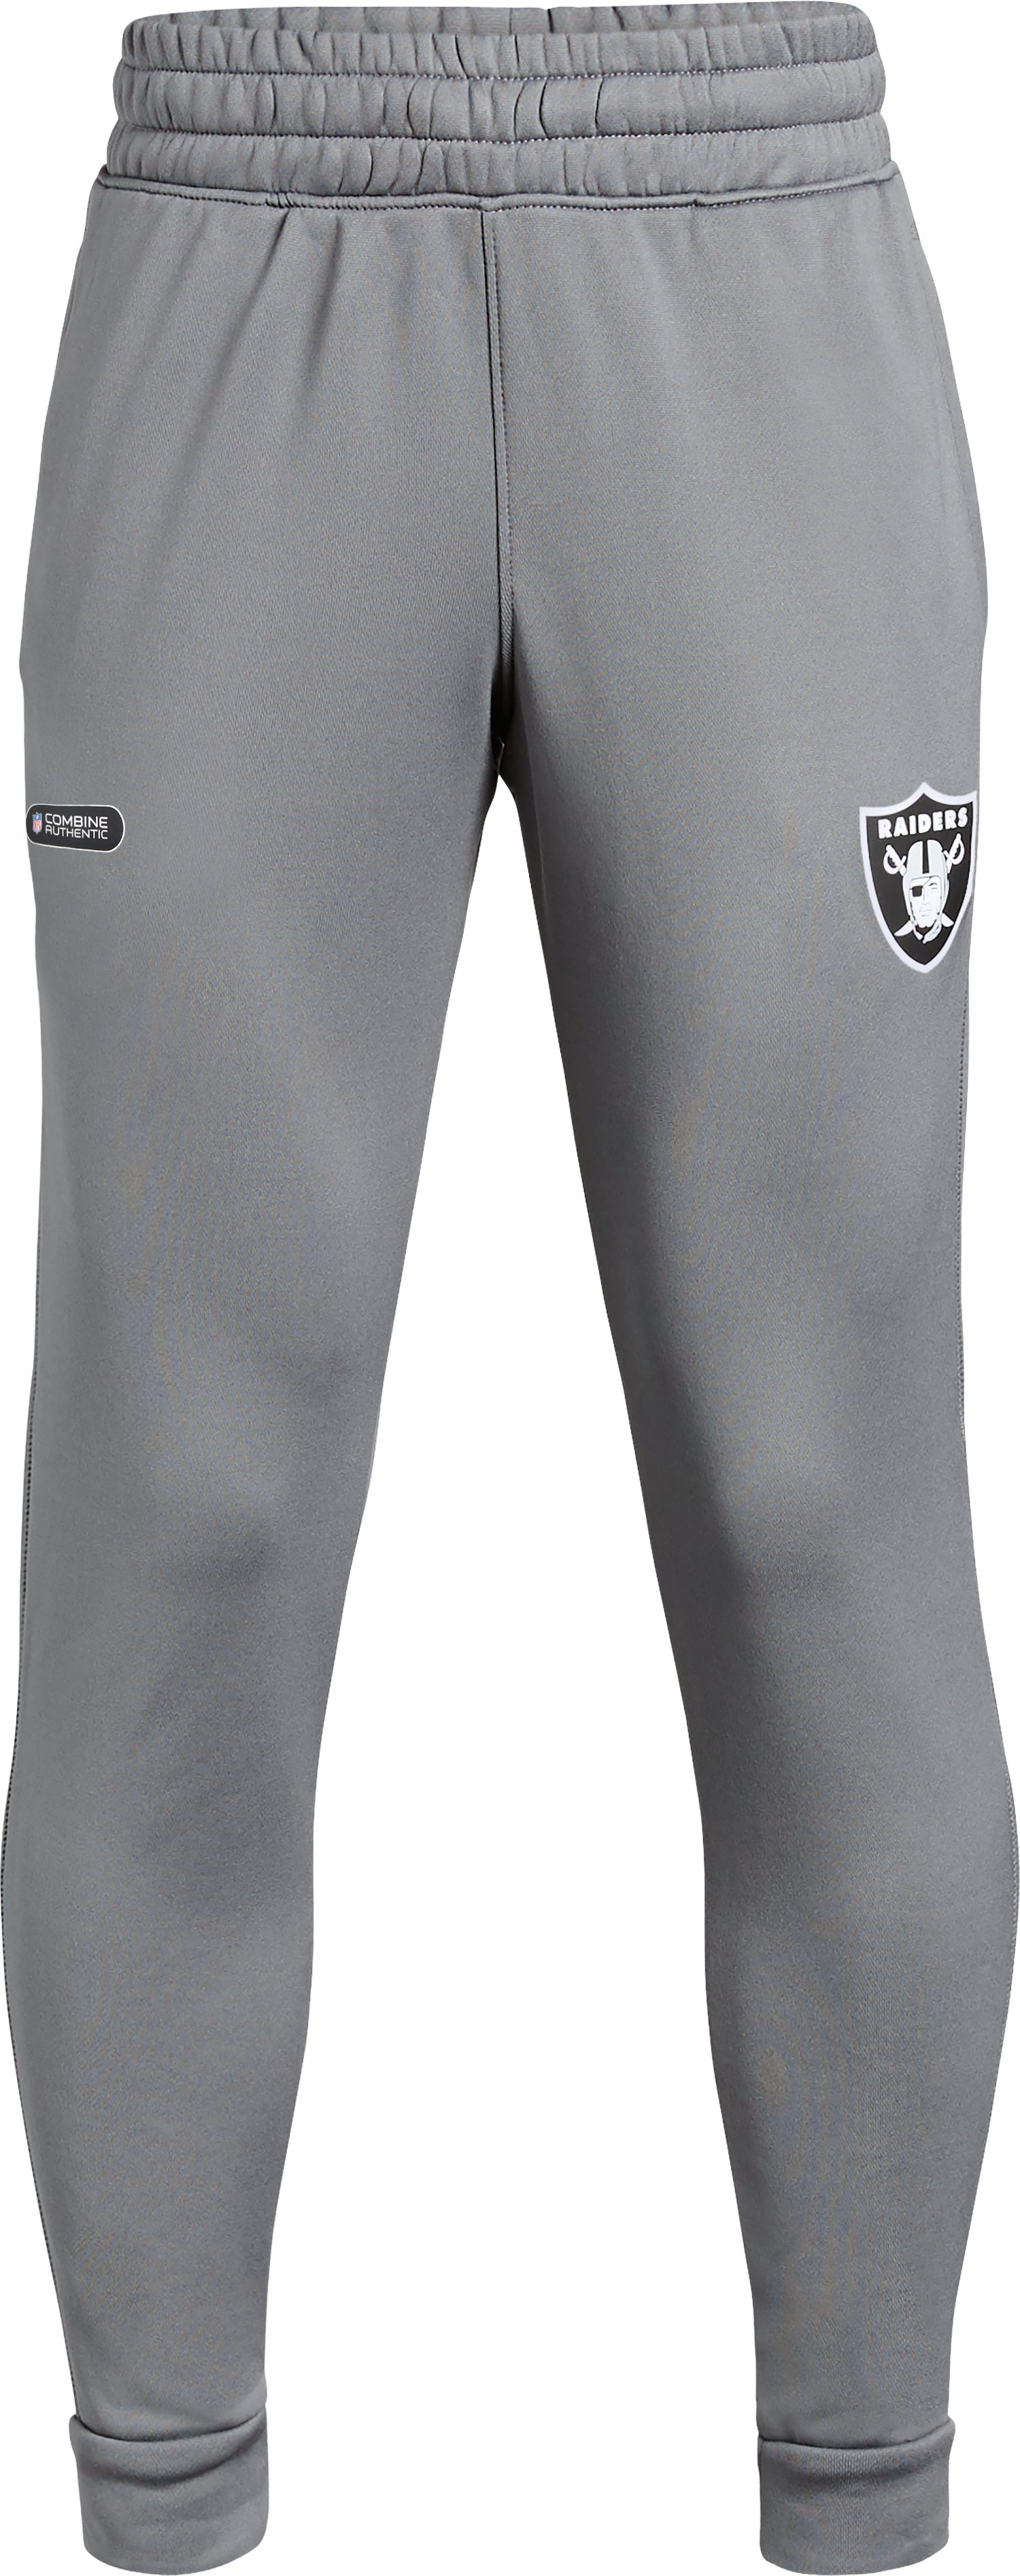 Boys' NFL Combine Authentic UA Tech™ Terry Joggers, NFL_Oakland Raiders_Graphite